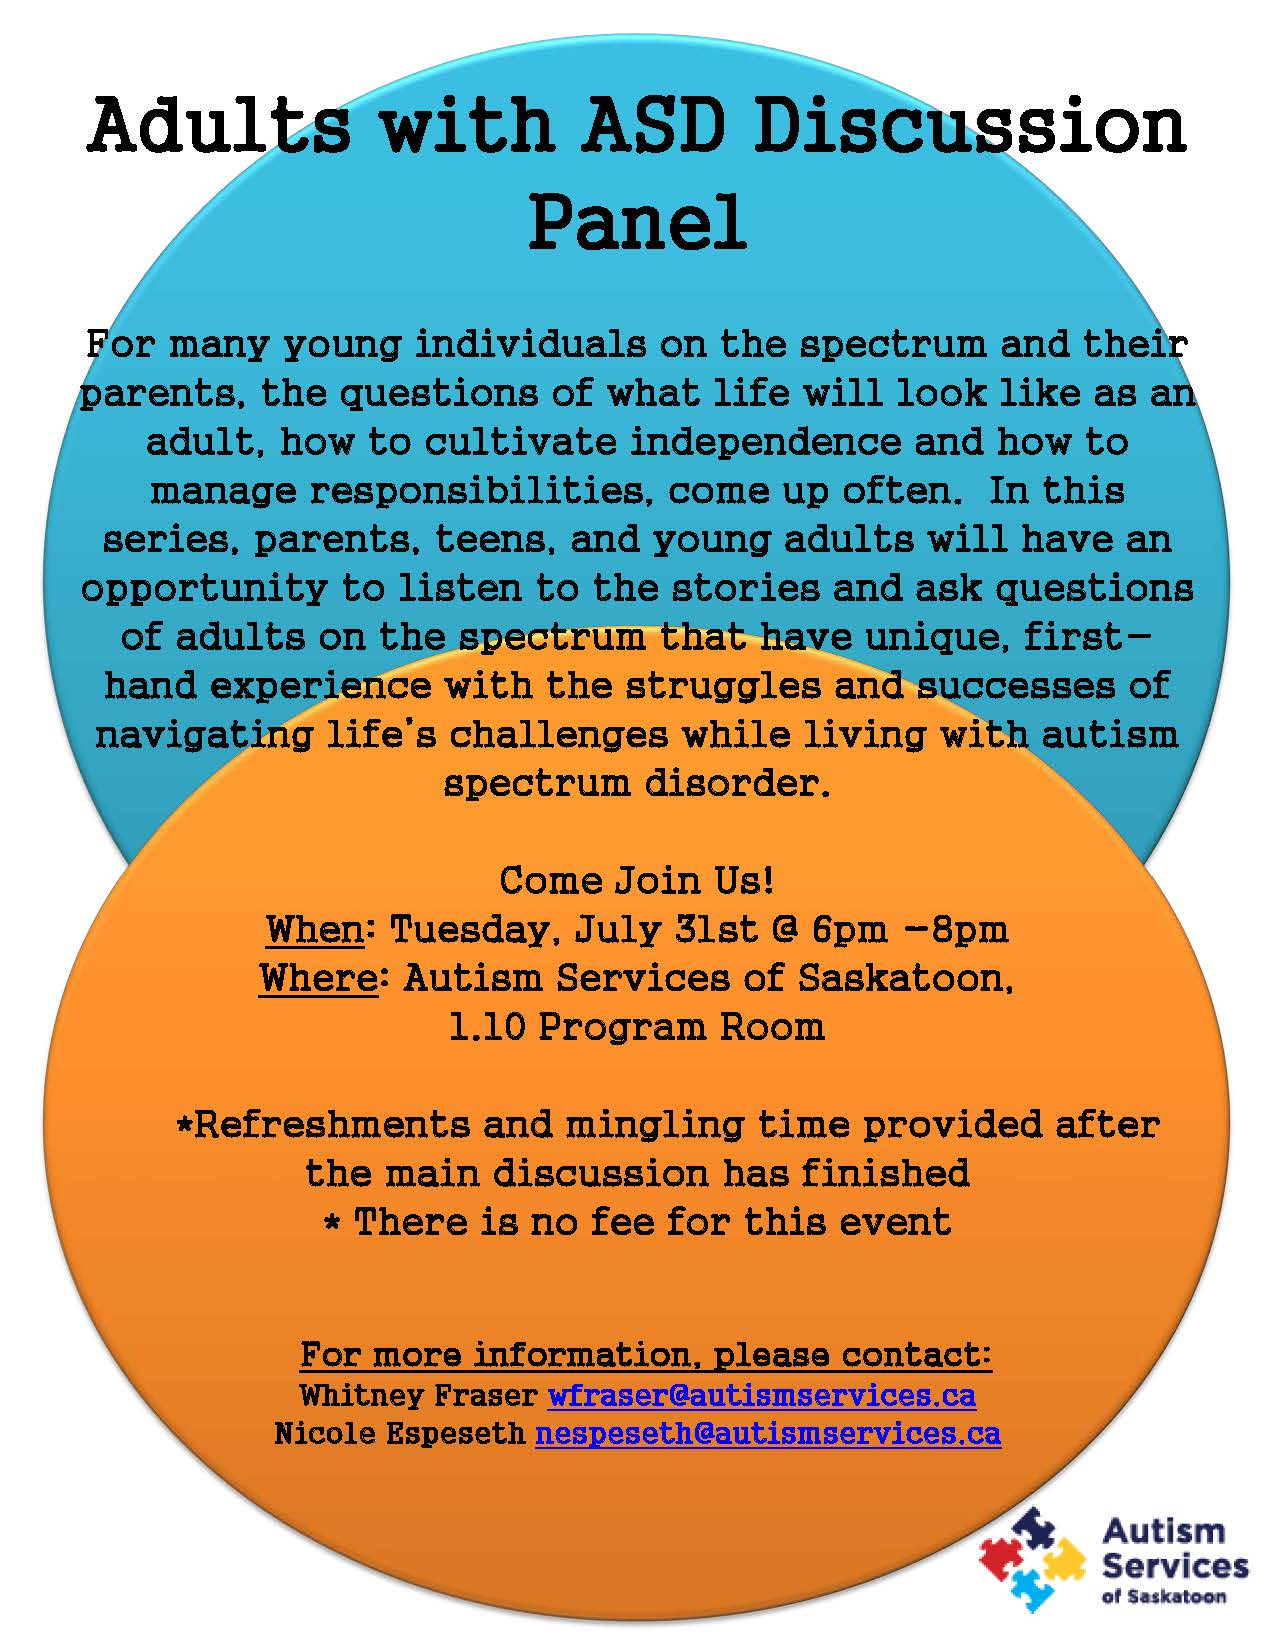 Adults with ASD Discussion Panel Poster 2018